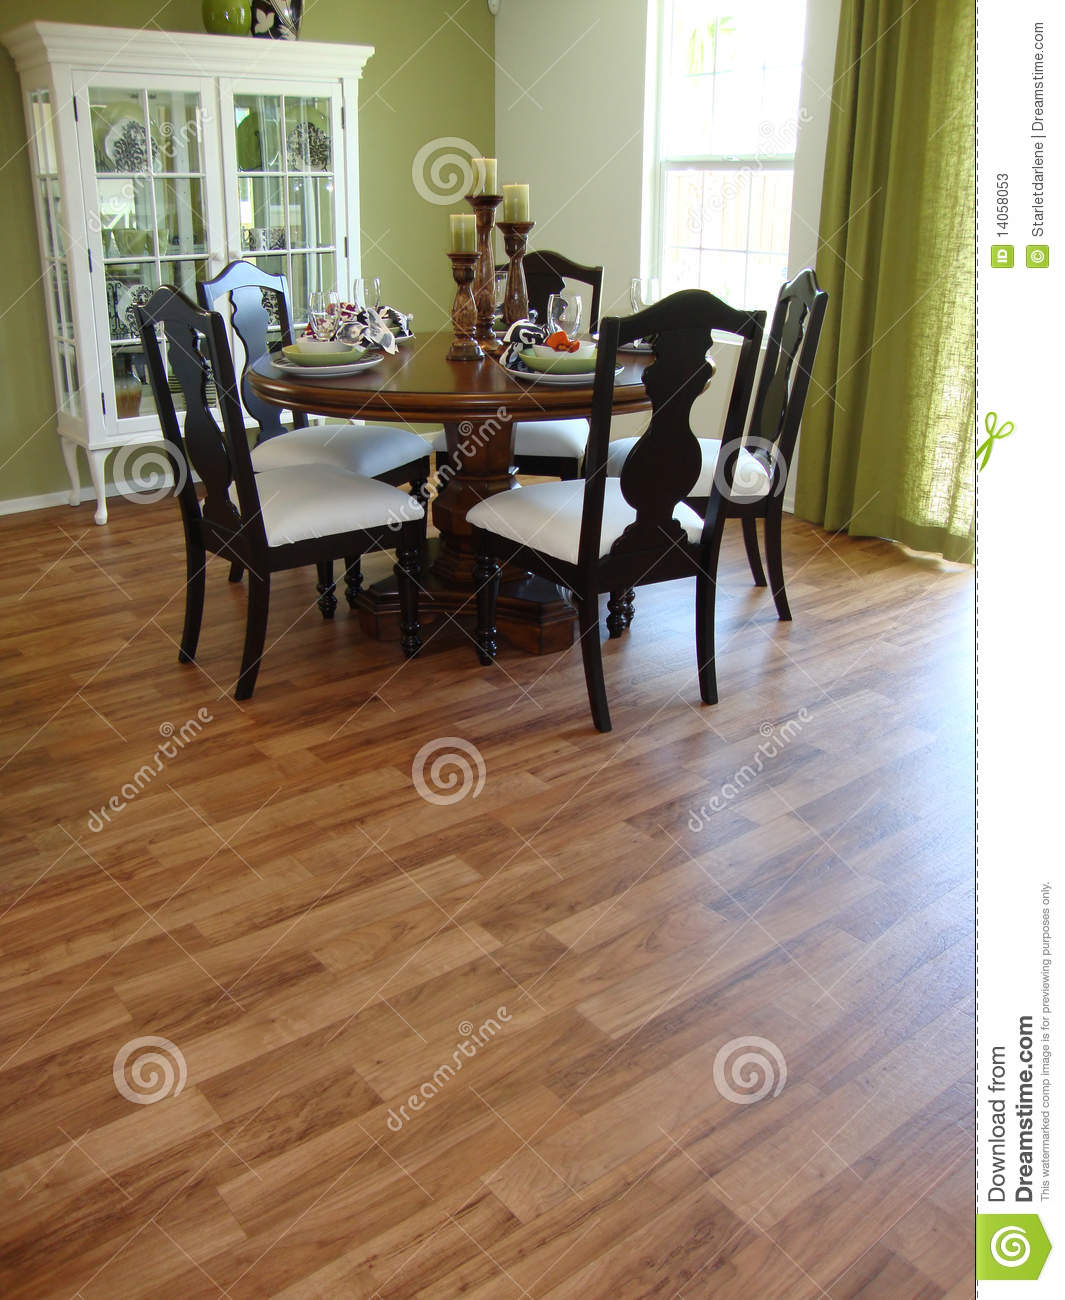 dining room with table and five wood chairs room has wood floors